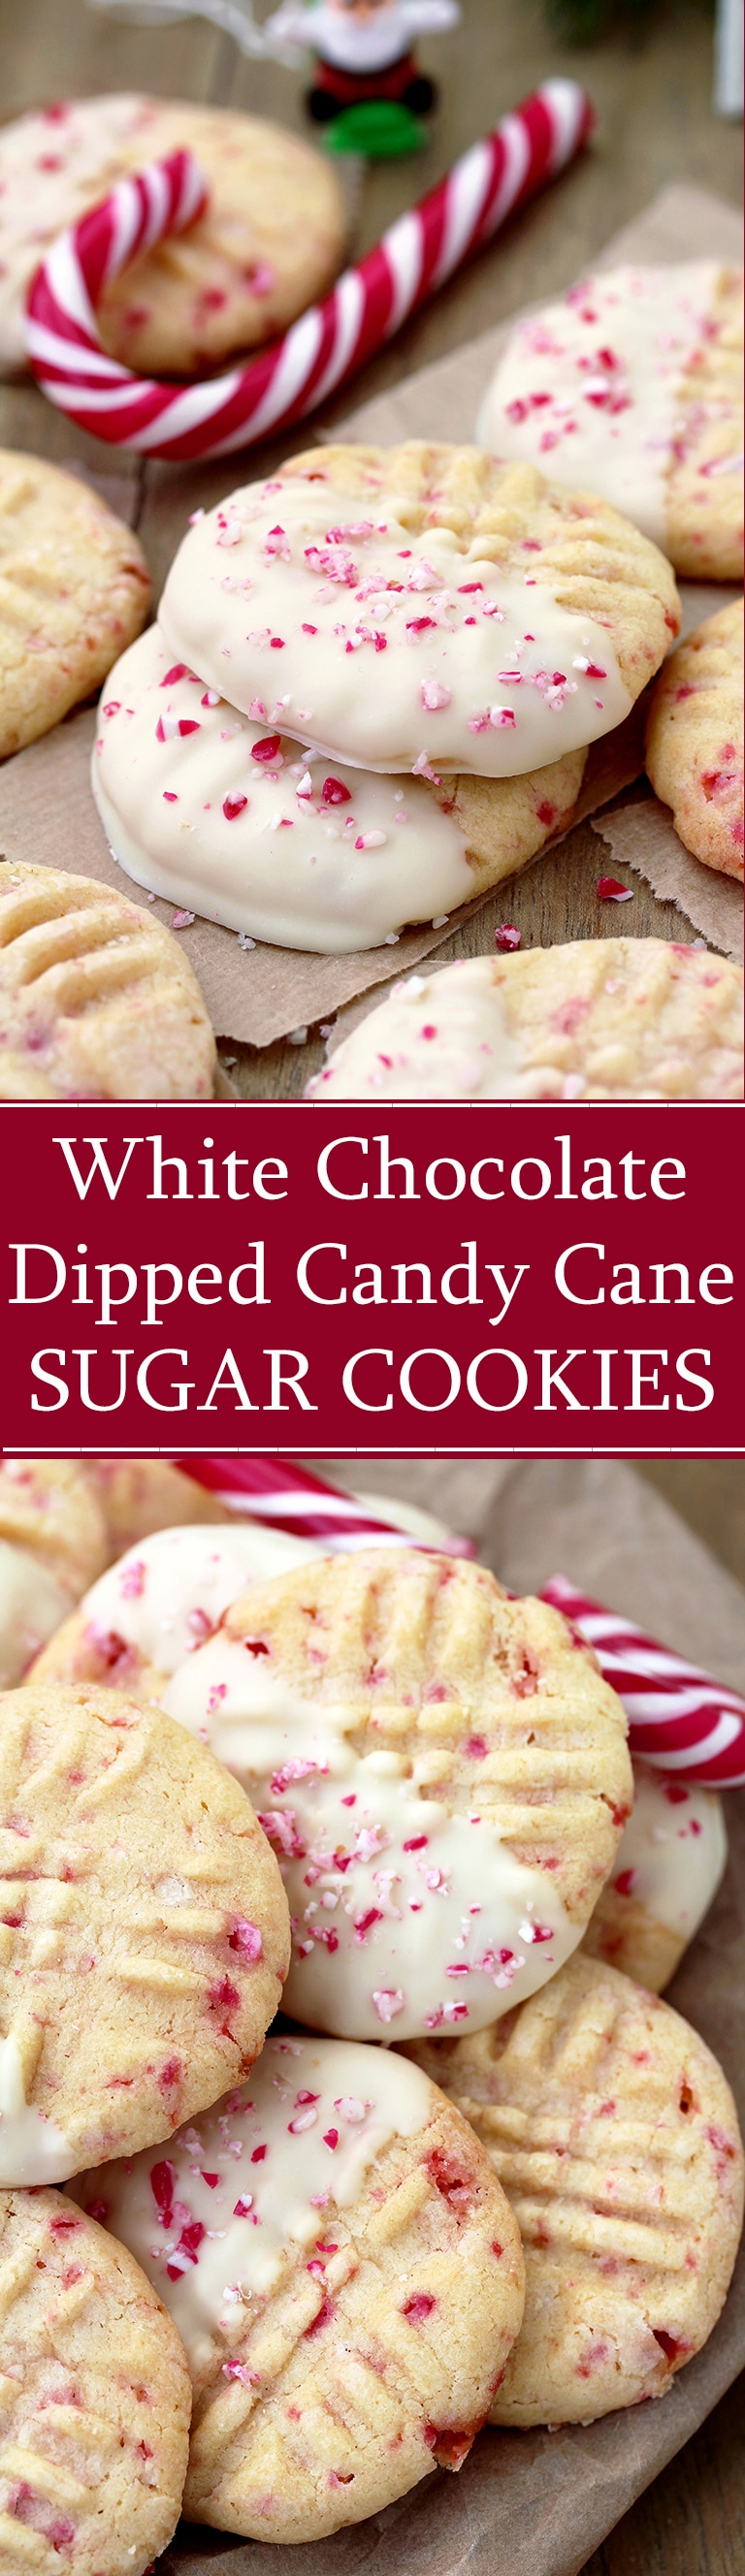 White Chocolate Dipped Candy Cane Sugar Cookies – delicious sugar cookies, just perfect for Christmas. They are easy to make and melt in your mouth. HO HO HO.. Christmas is coming and that makes me so happy.